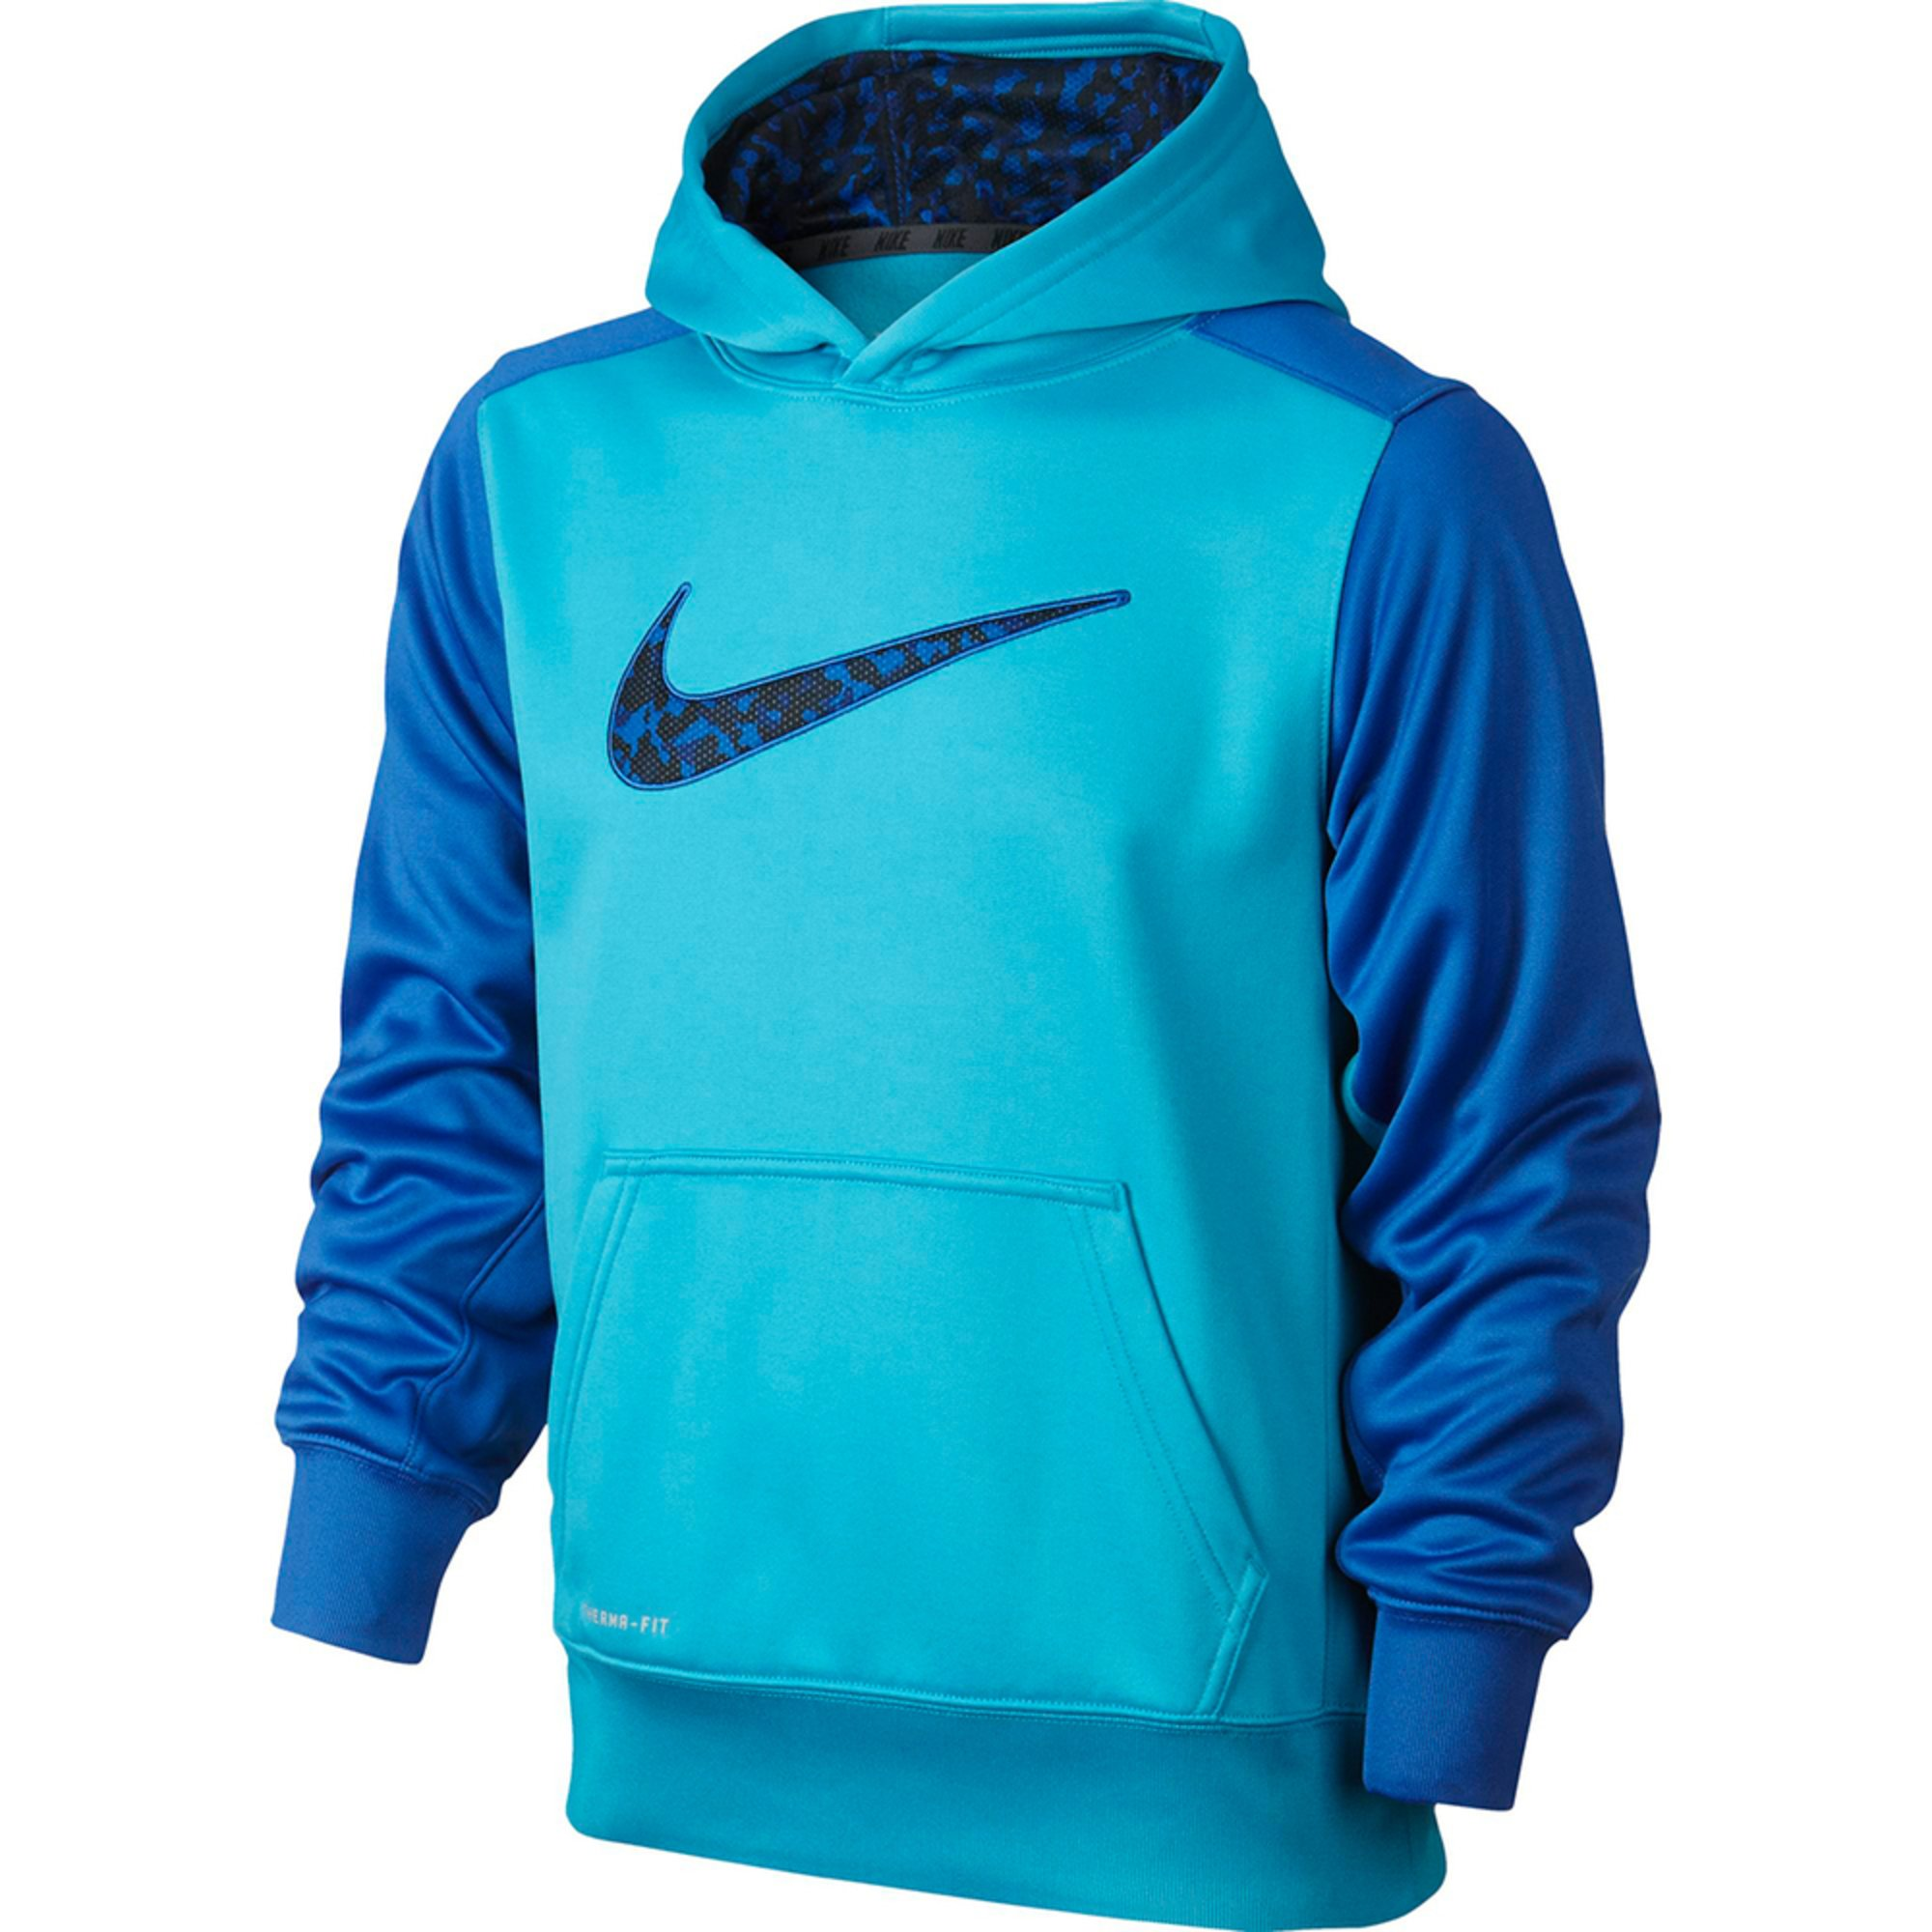 Nike Big Boys' Ko 3.0 Applique Hoodie | Big Boys' Hoodies ...